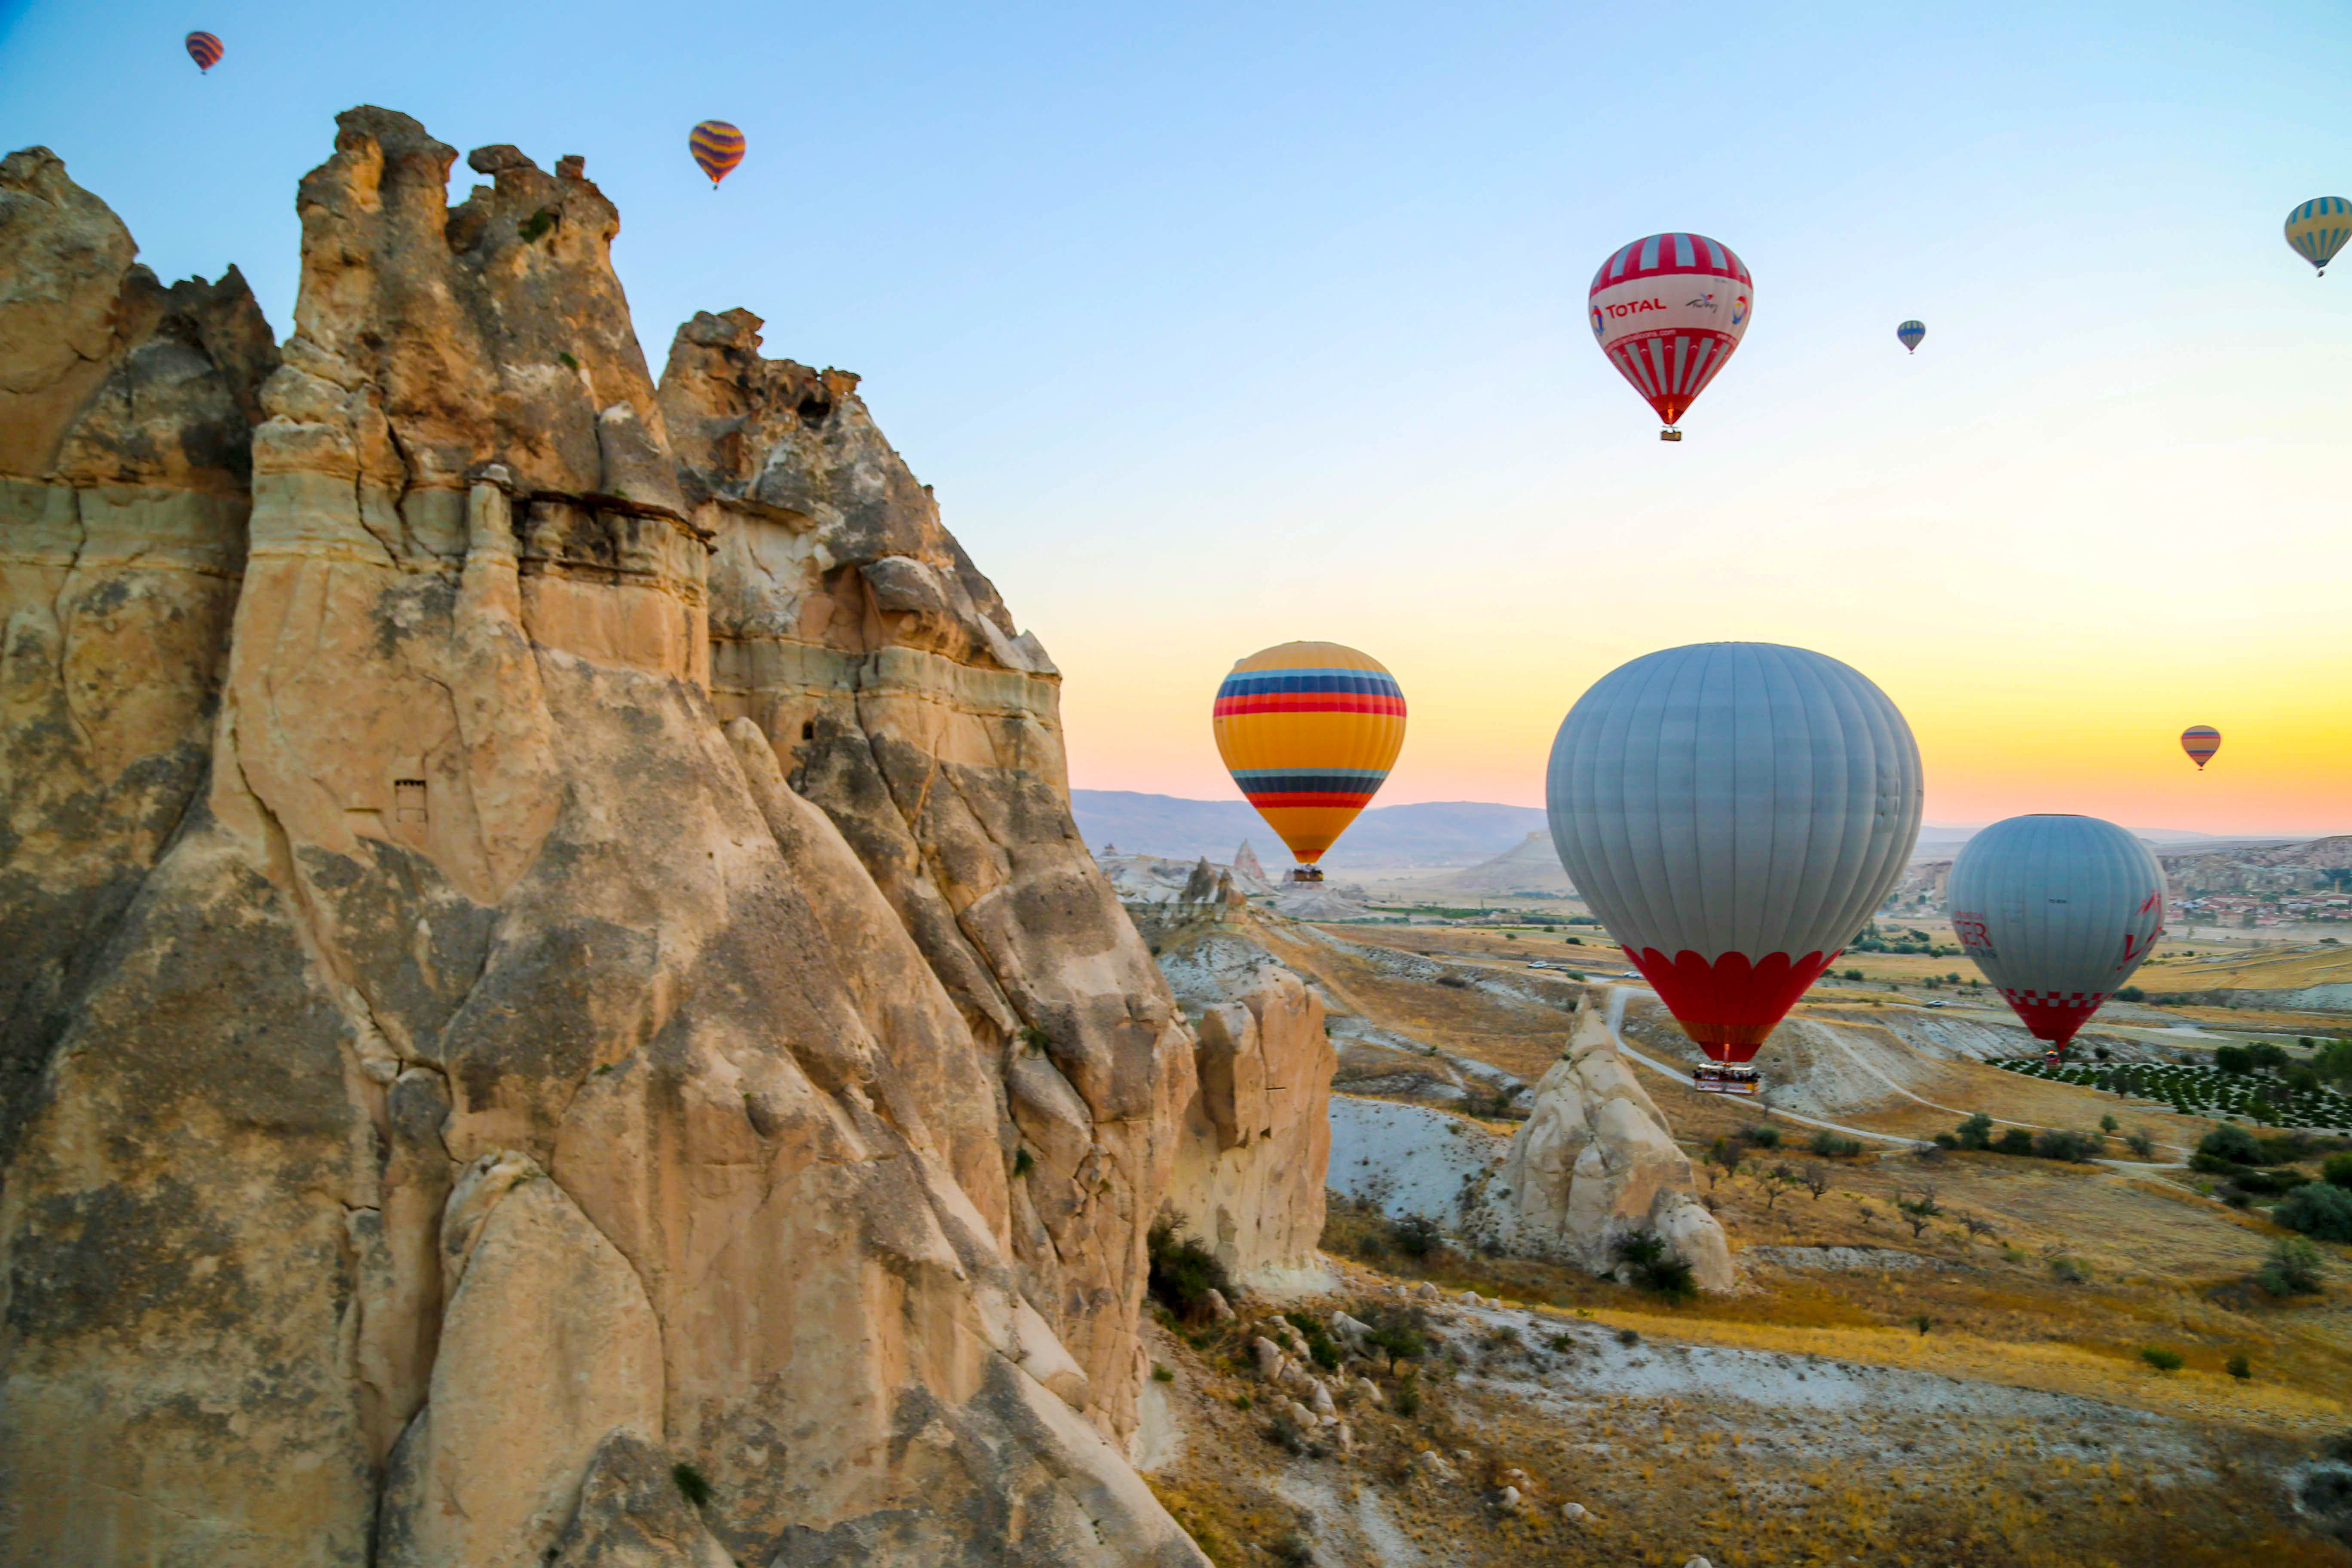 Fairy Chimneys & Hot Air Balloons